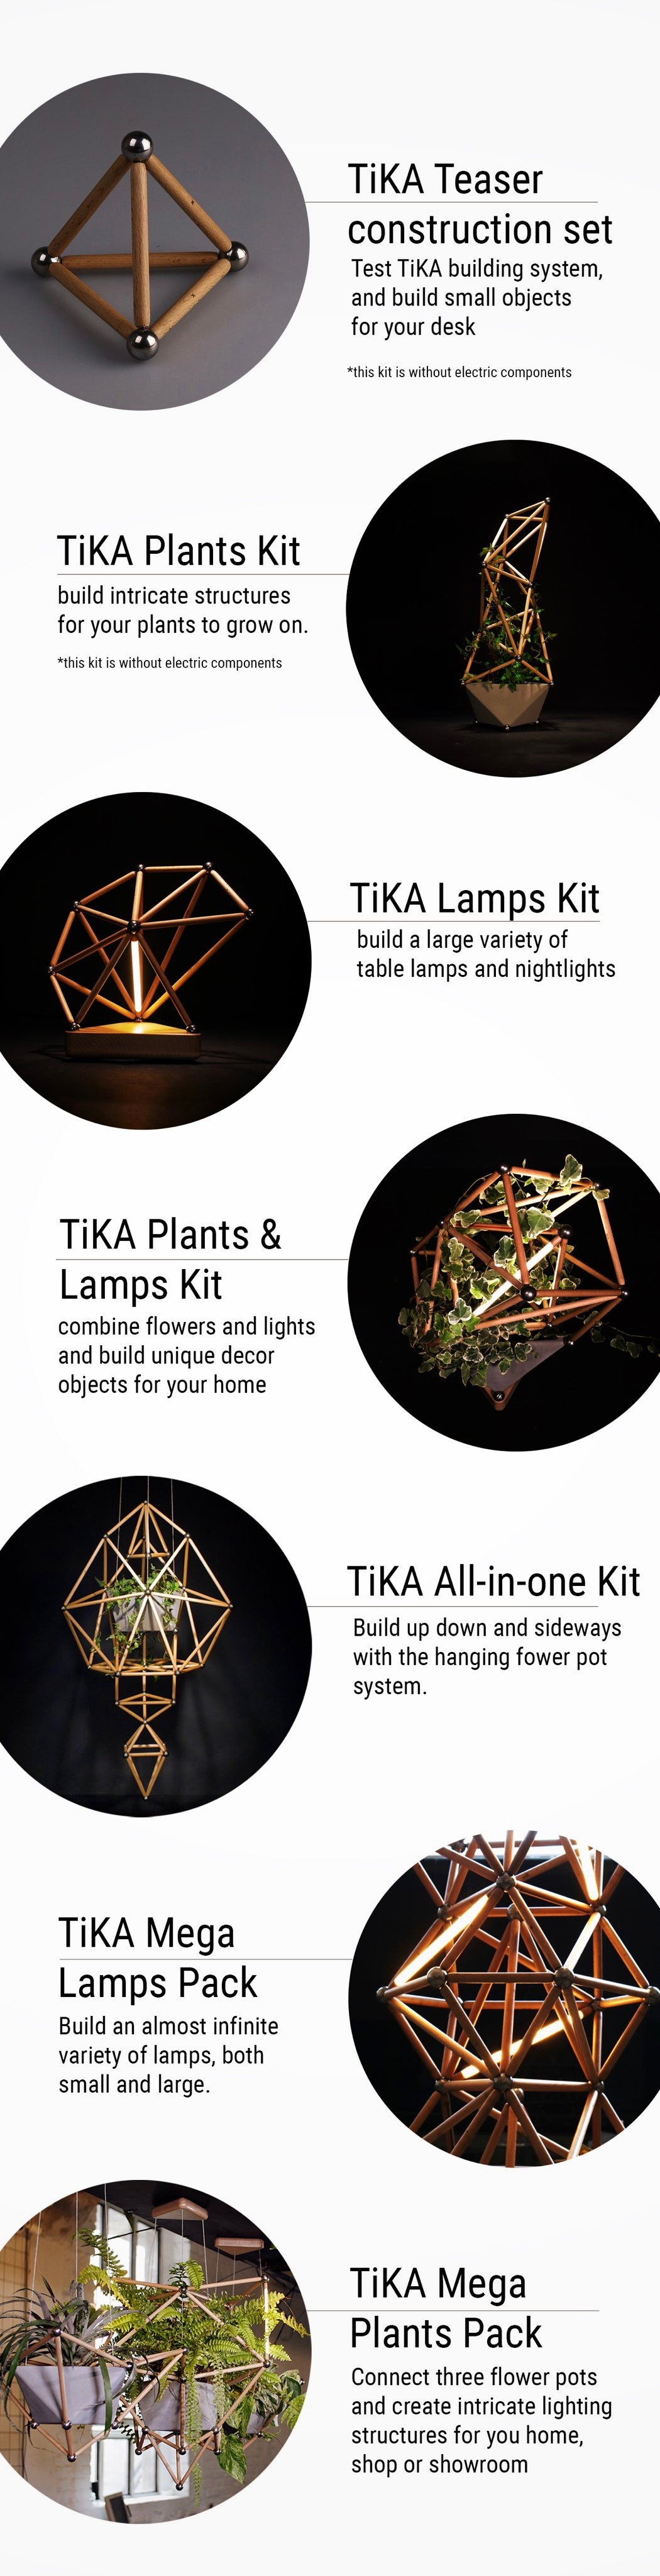 tika_modular_design_kit_02